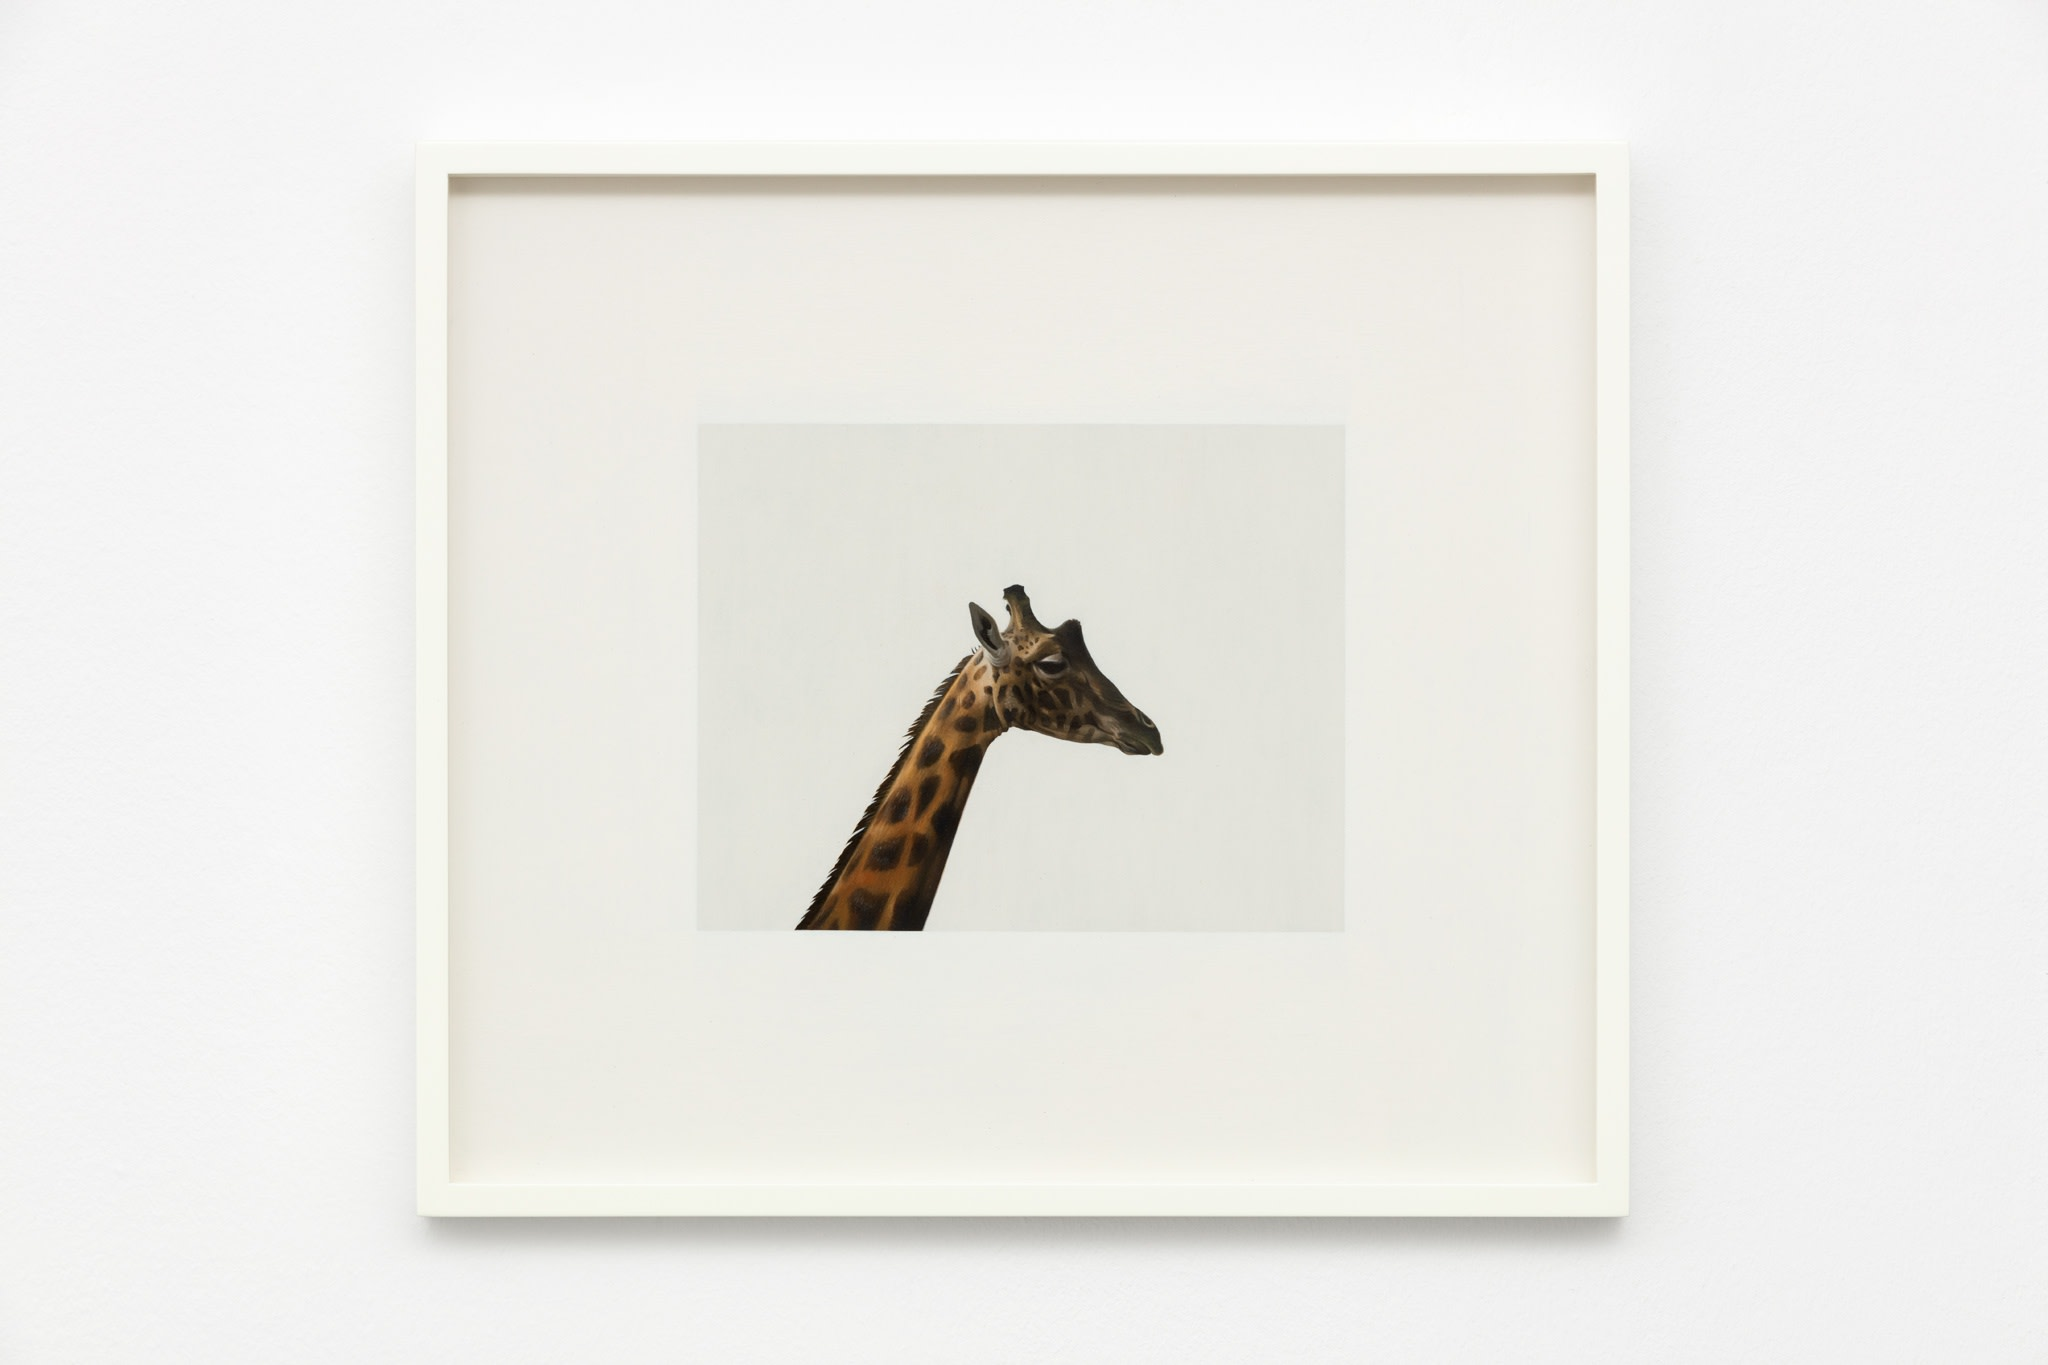 Andrew Grassie, Giraffe, 2020, tempera on paper on board, 14,8 x 18,8 cm (5 1/2 x 7 1/8 in) (image), 31,1 x 35,2 x 3 cm (12 1/4 x 13 3/4 x 1 1/8 in) (framed). Photo © Andrea Rossetti